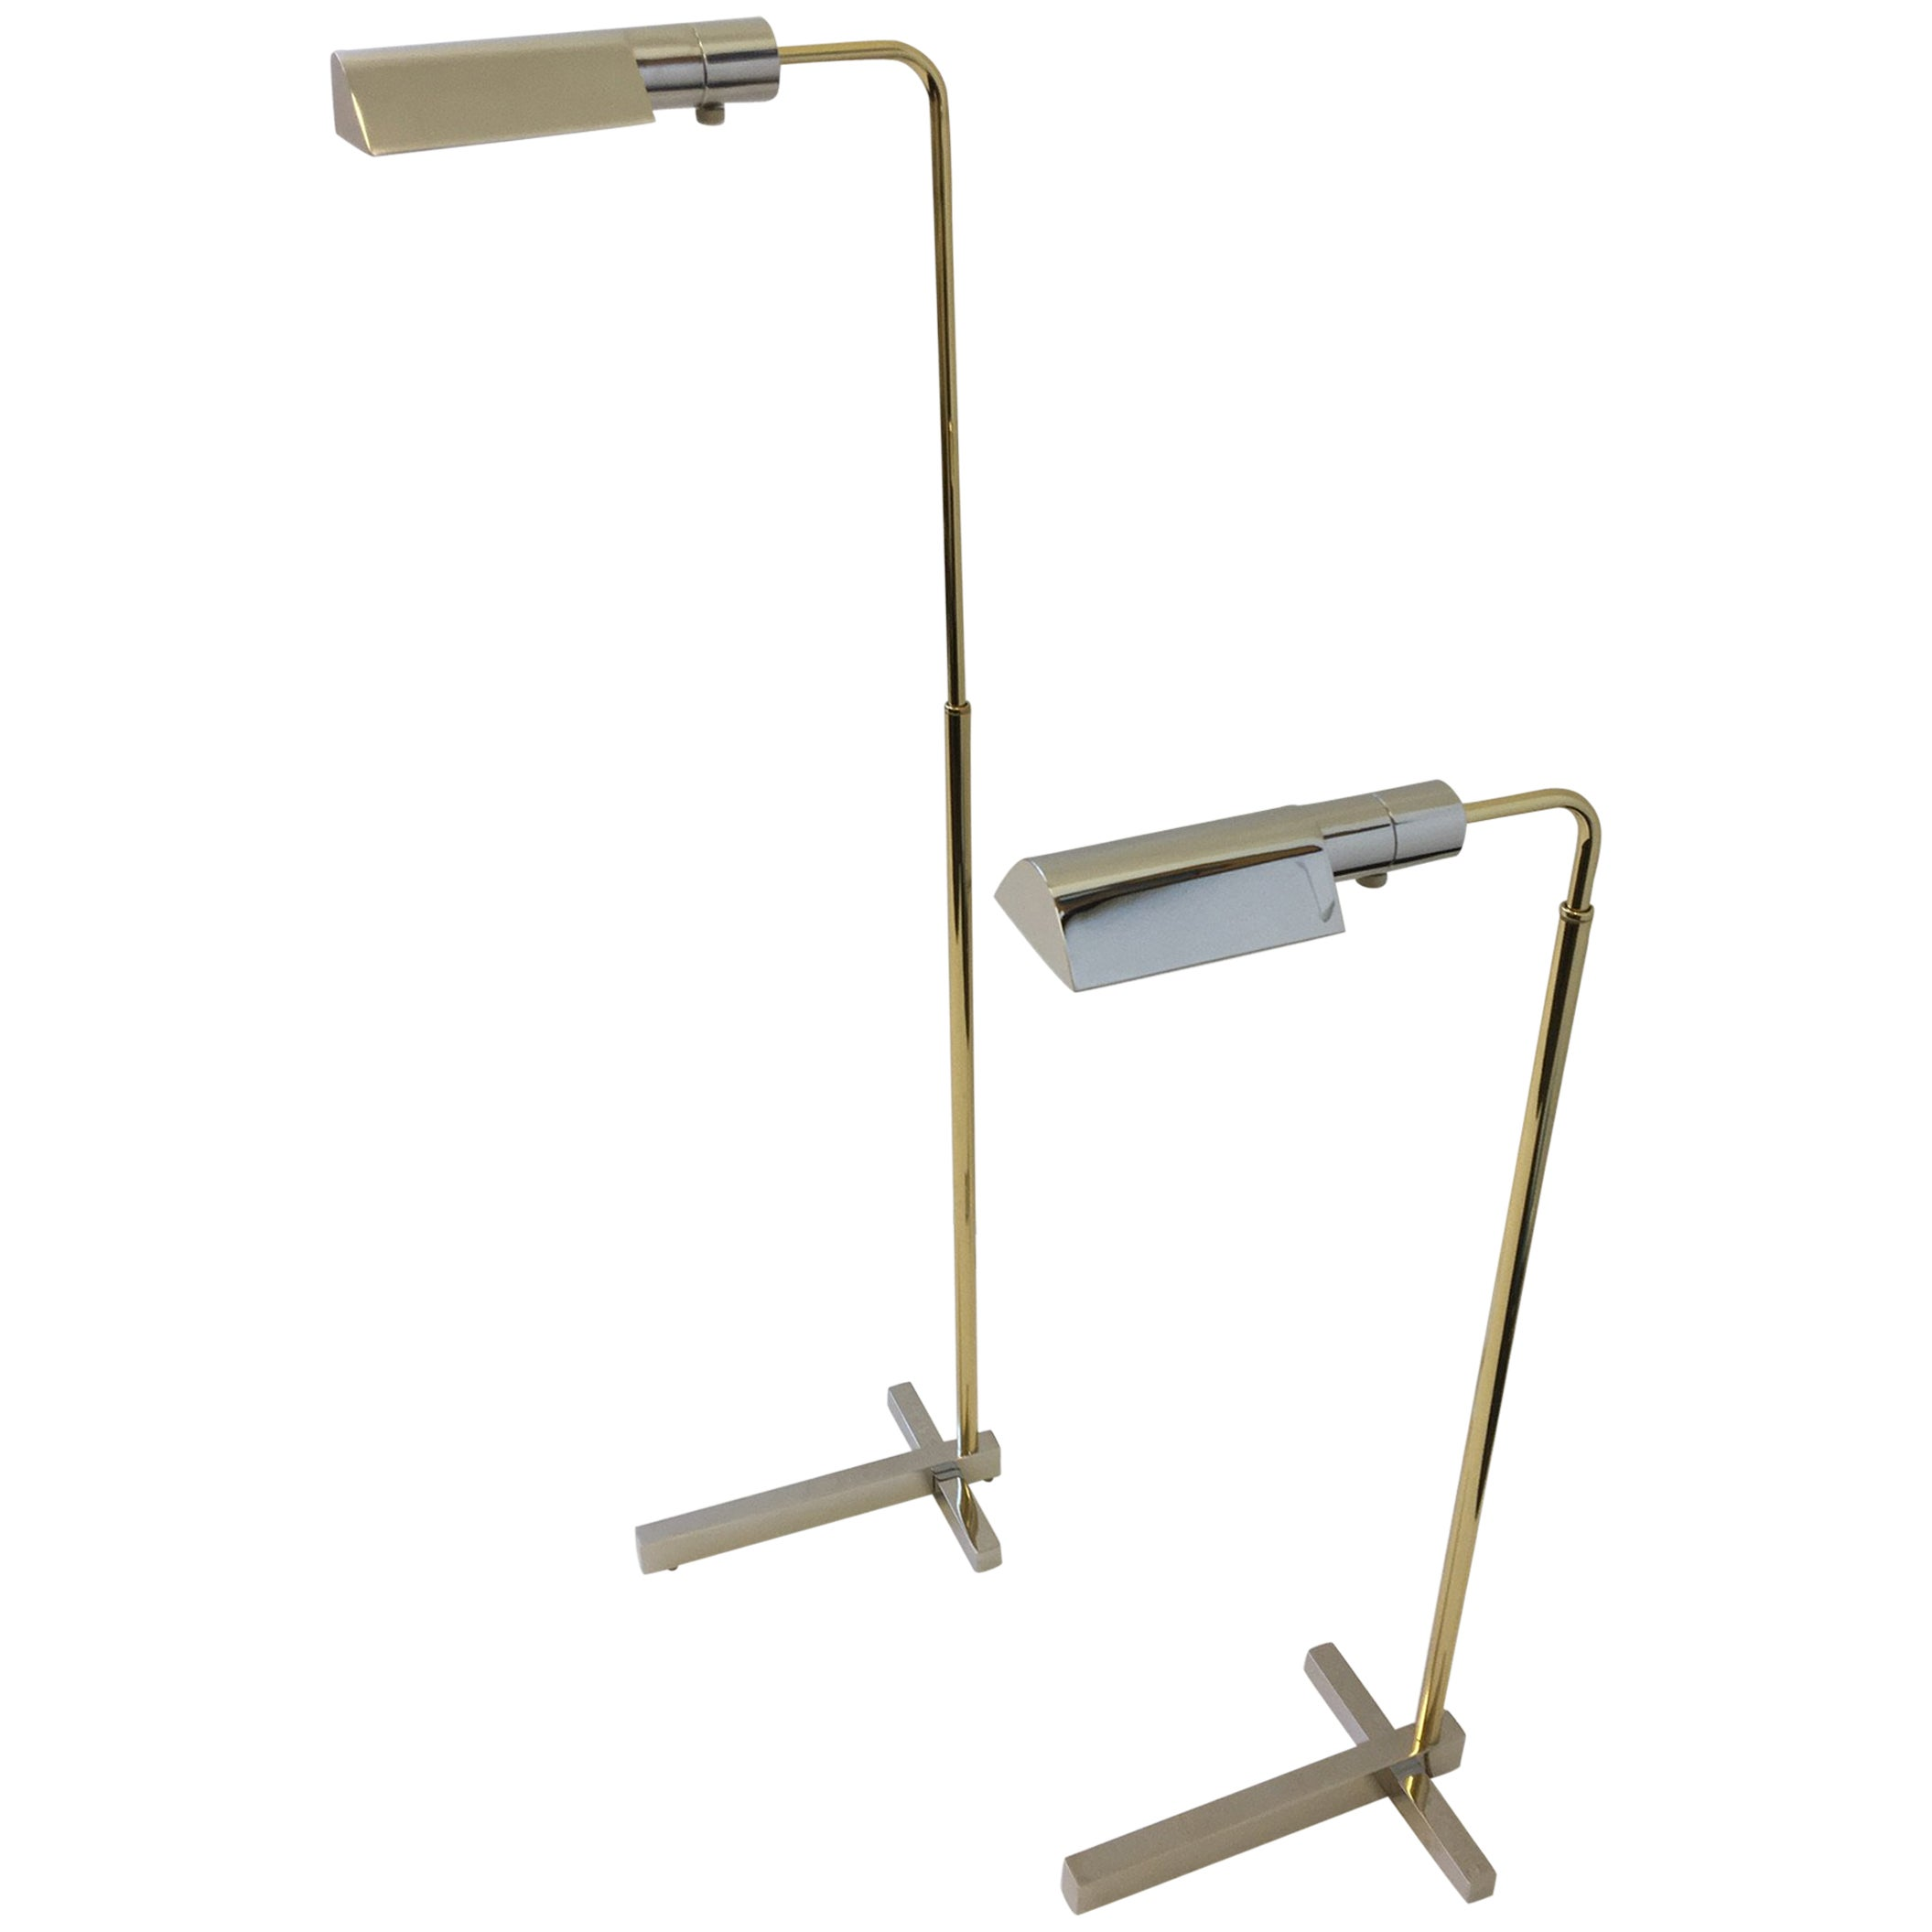 Pair of Nickel and Brass Adjustable Floor Lamps by Casella